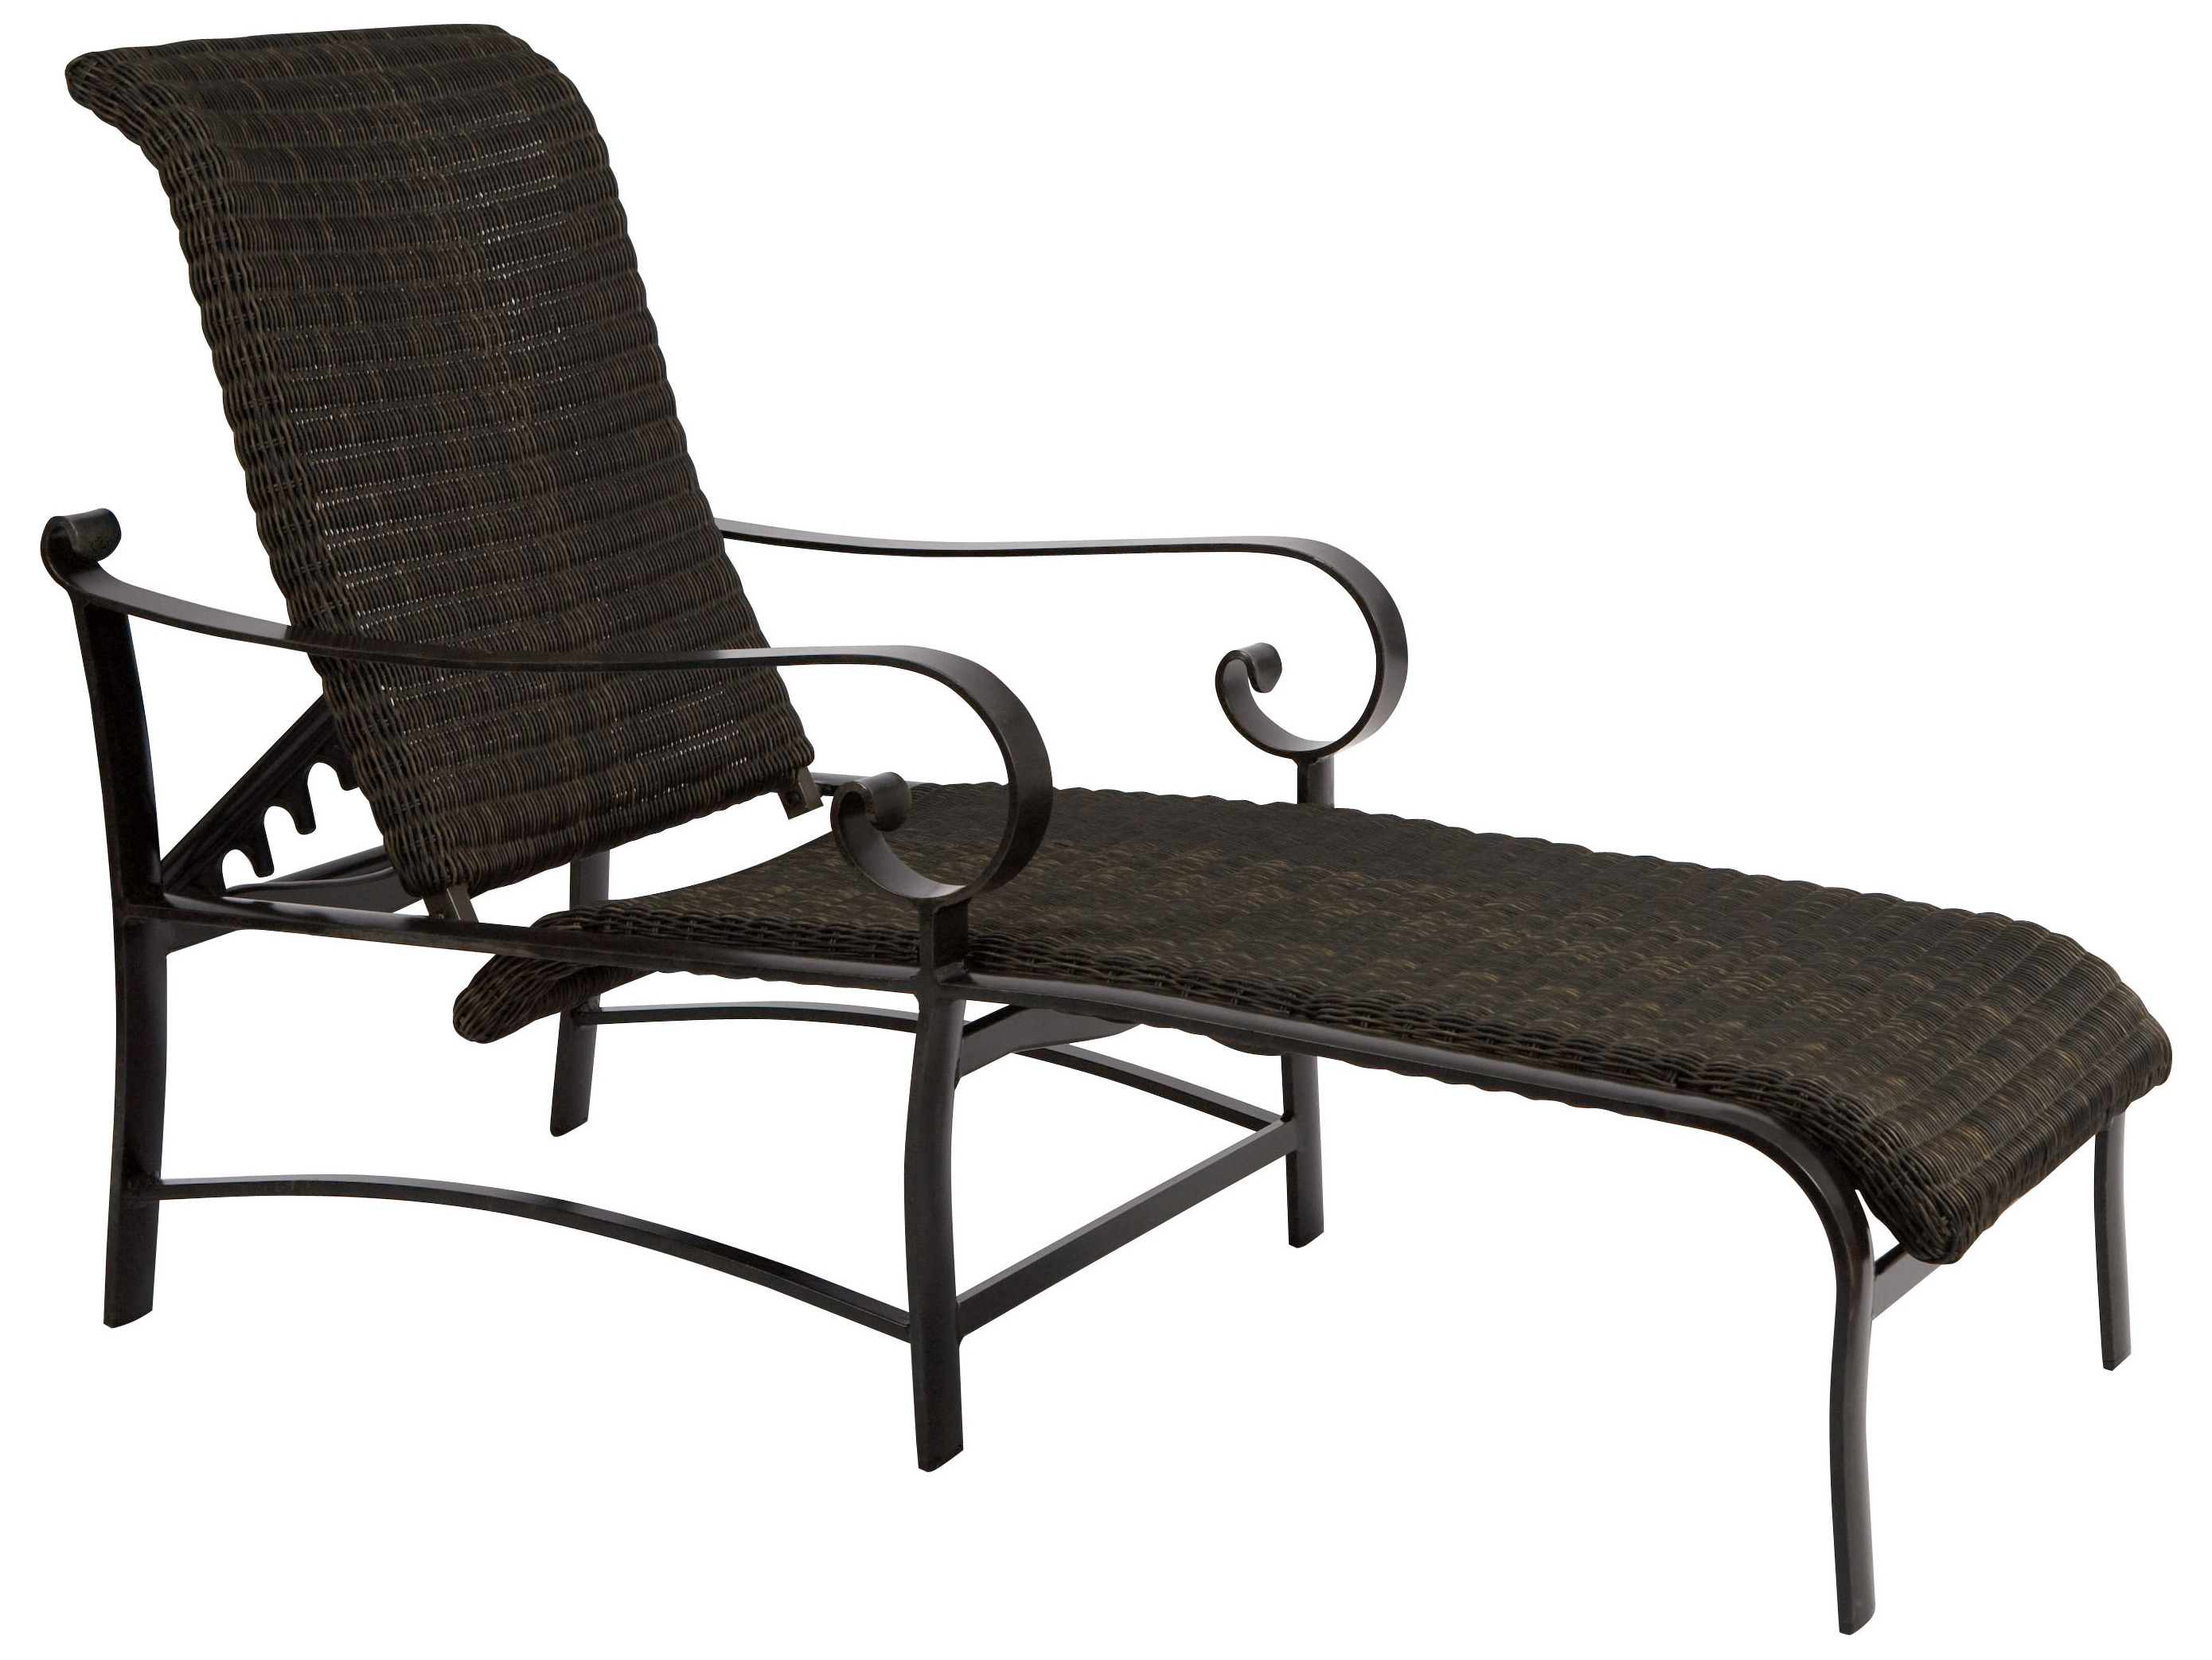 Woodard belden woven round weave wicker adjustable chaise for Chaise lounge construction